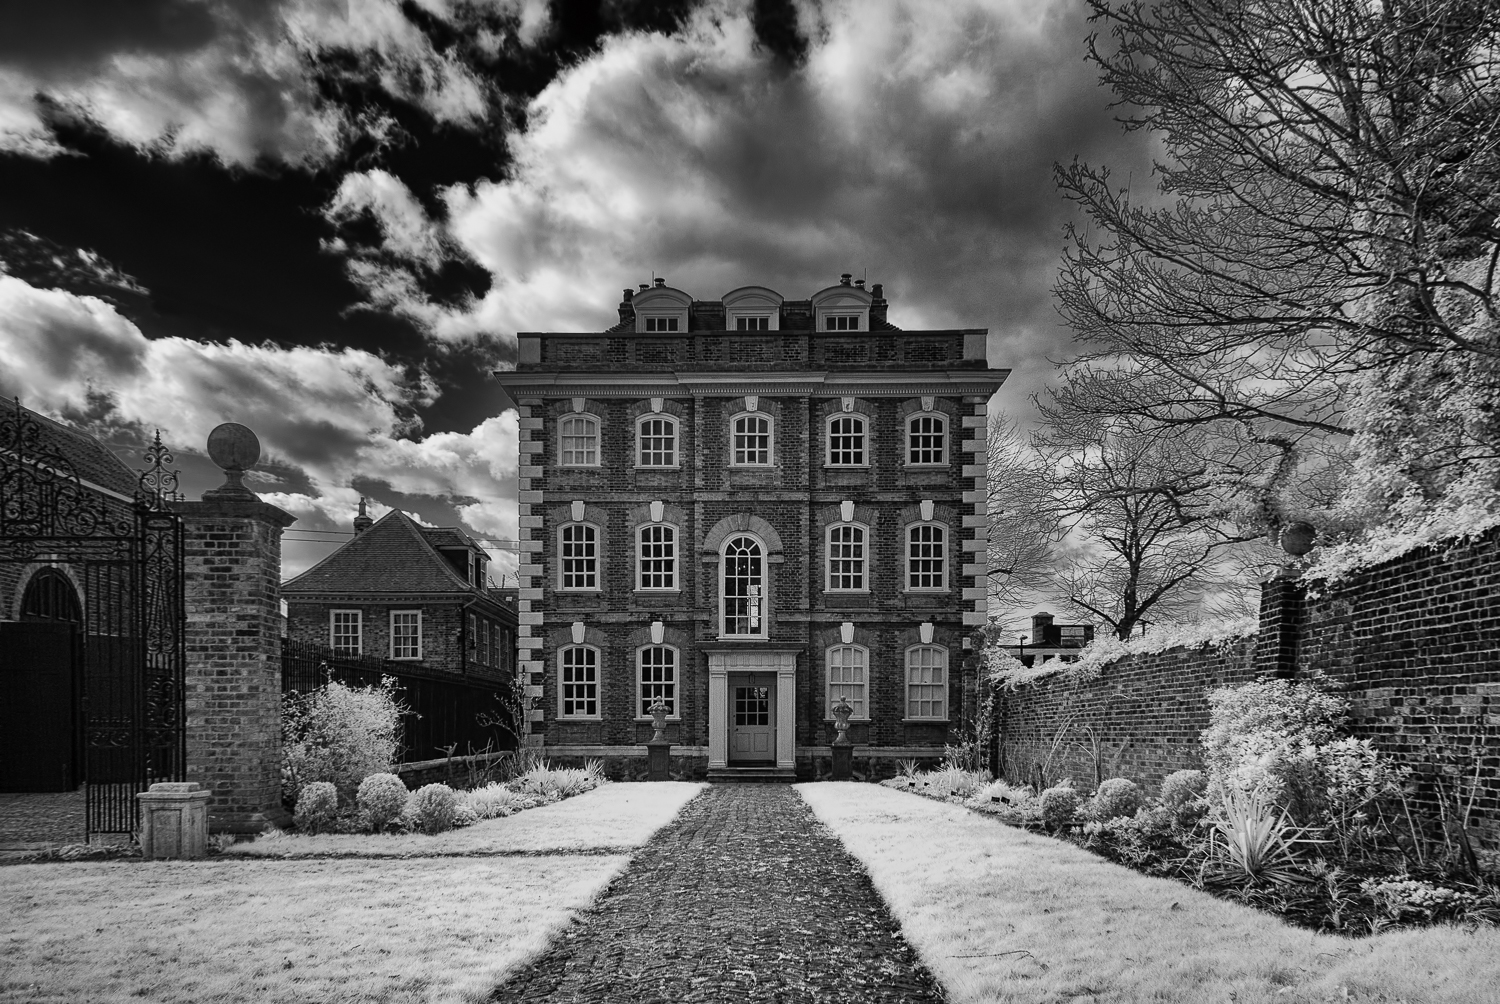 Rainham Hall - infra-red